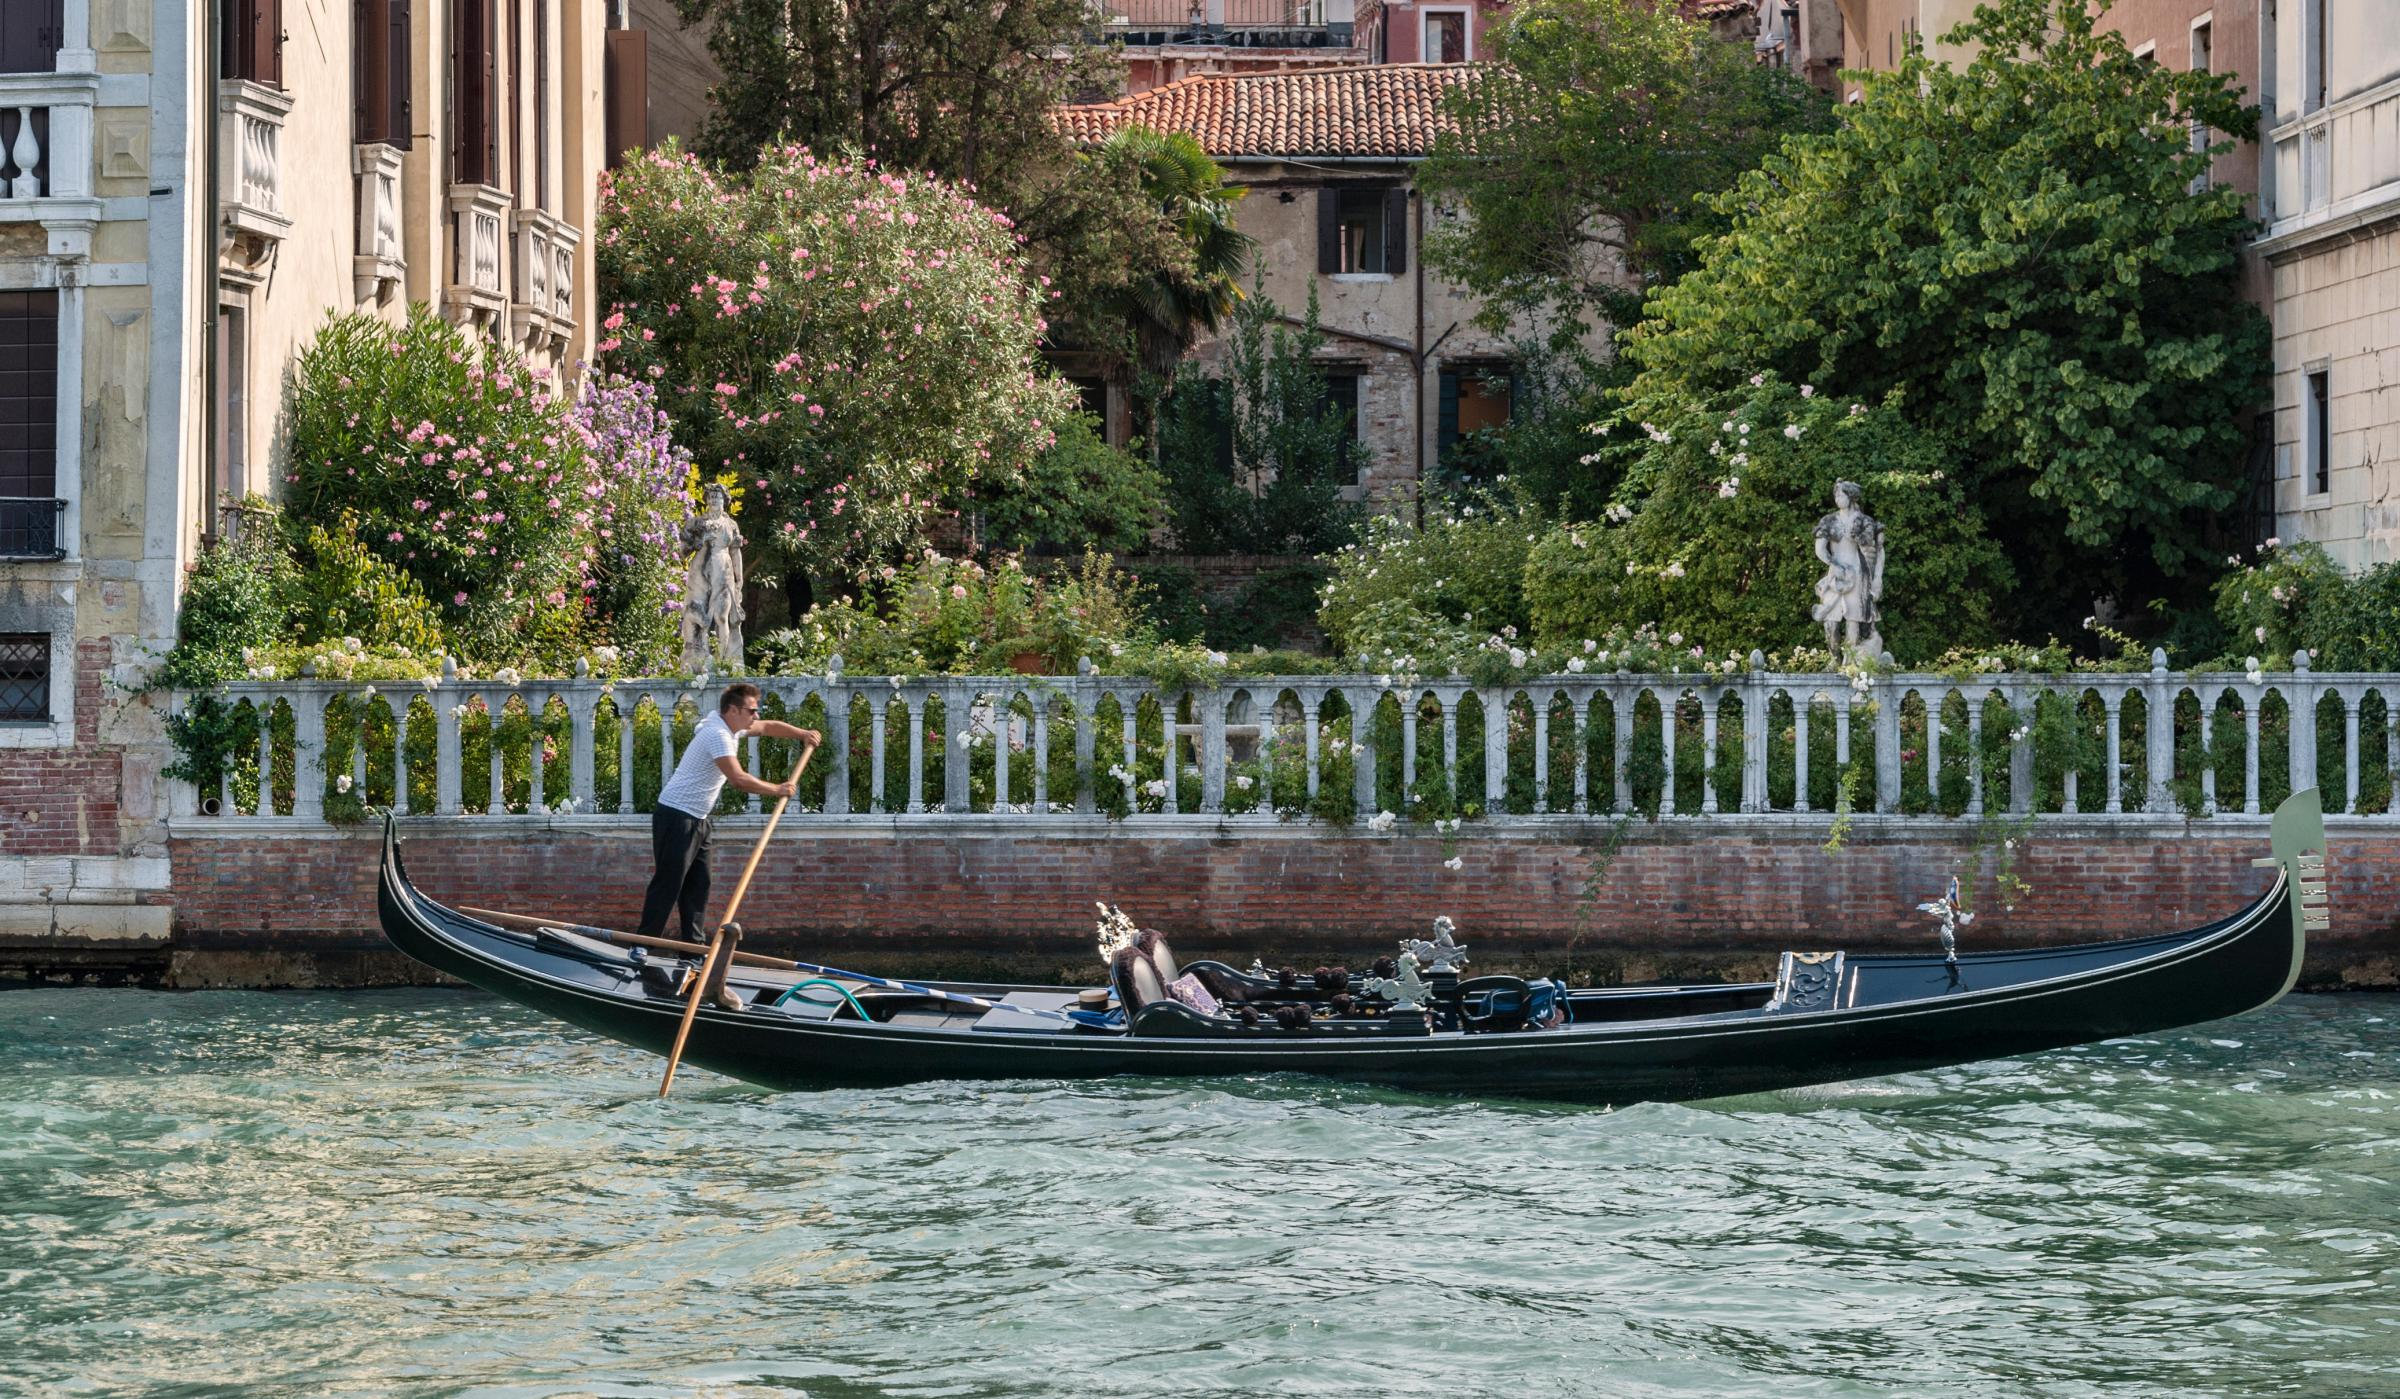 Travel: Hidden gardens of Venice